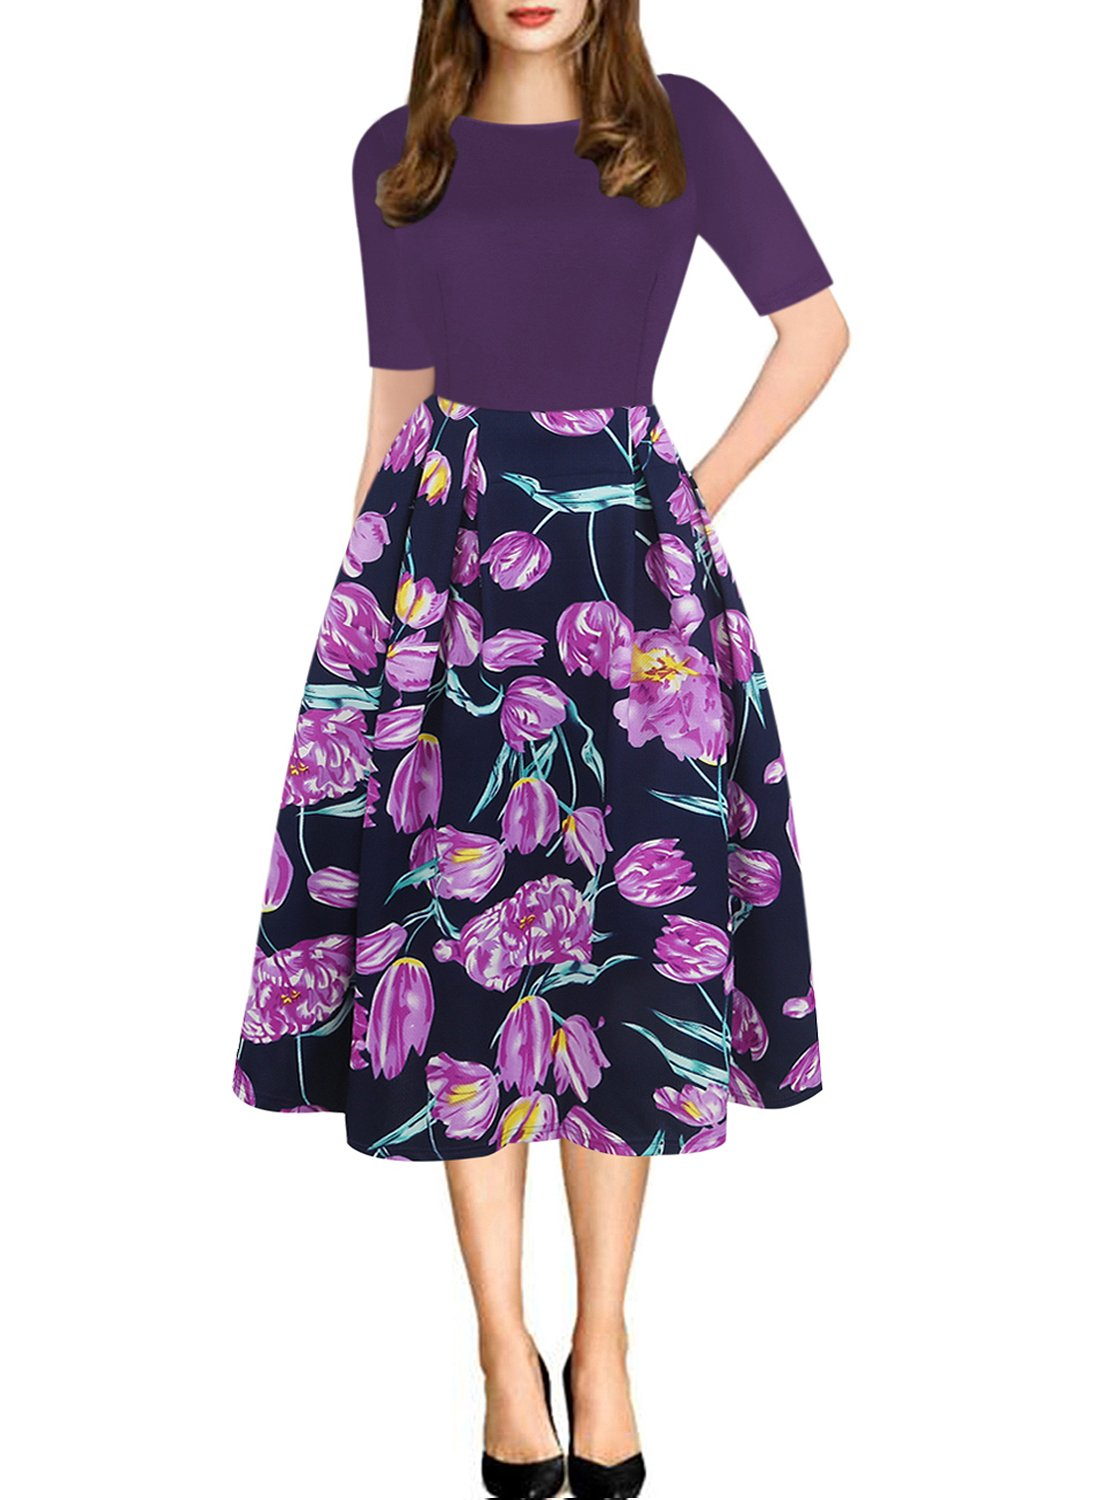 oxiuly Women's Vintage Patchwork Pockets Puffy Swing Casual Party Dress OX165 (2XL, Purple)